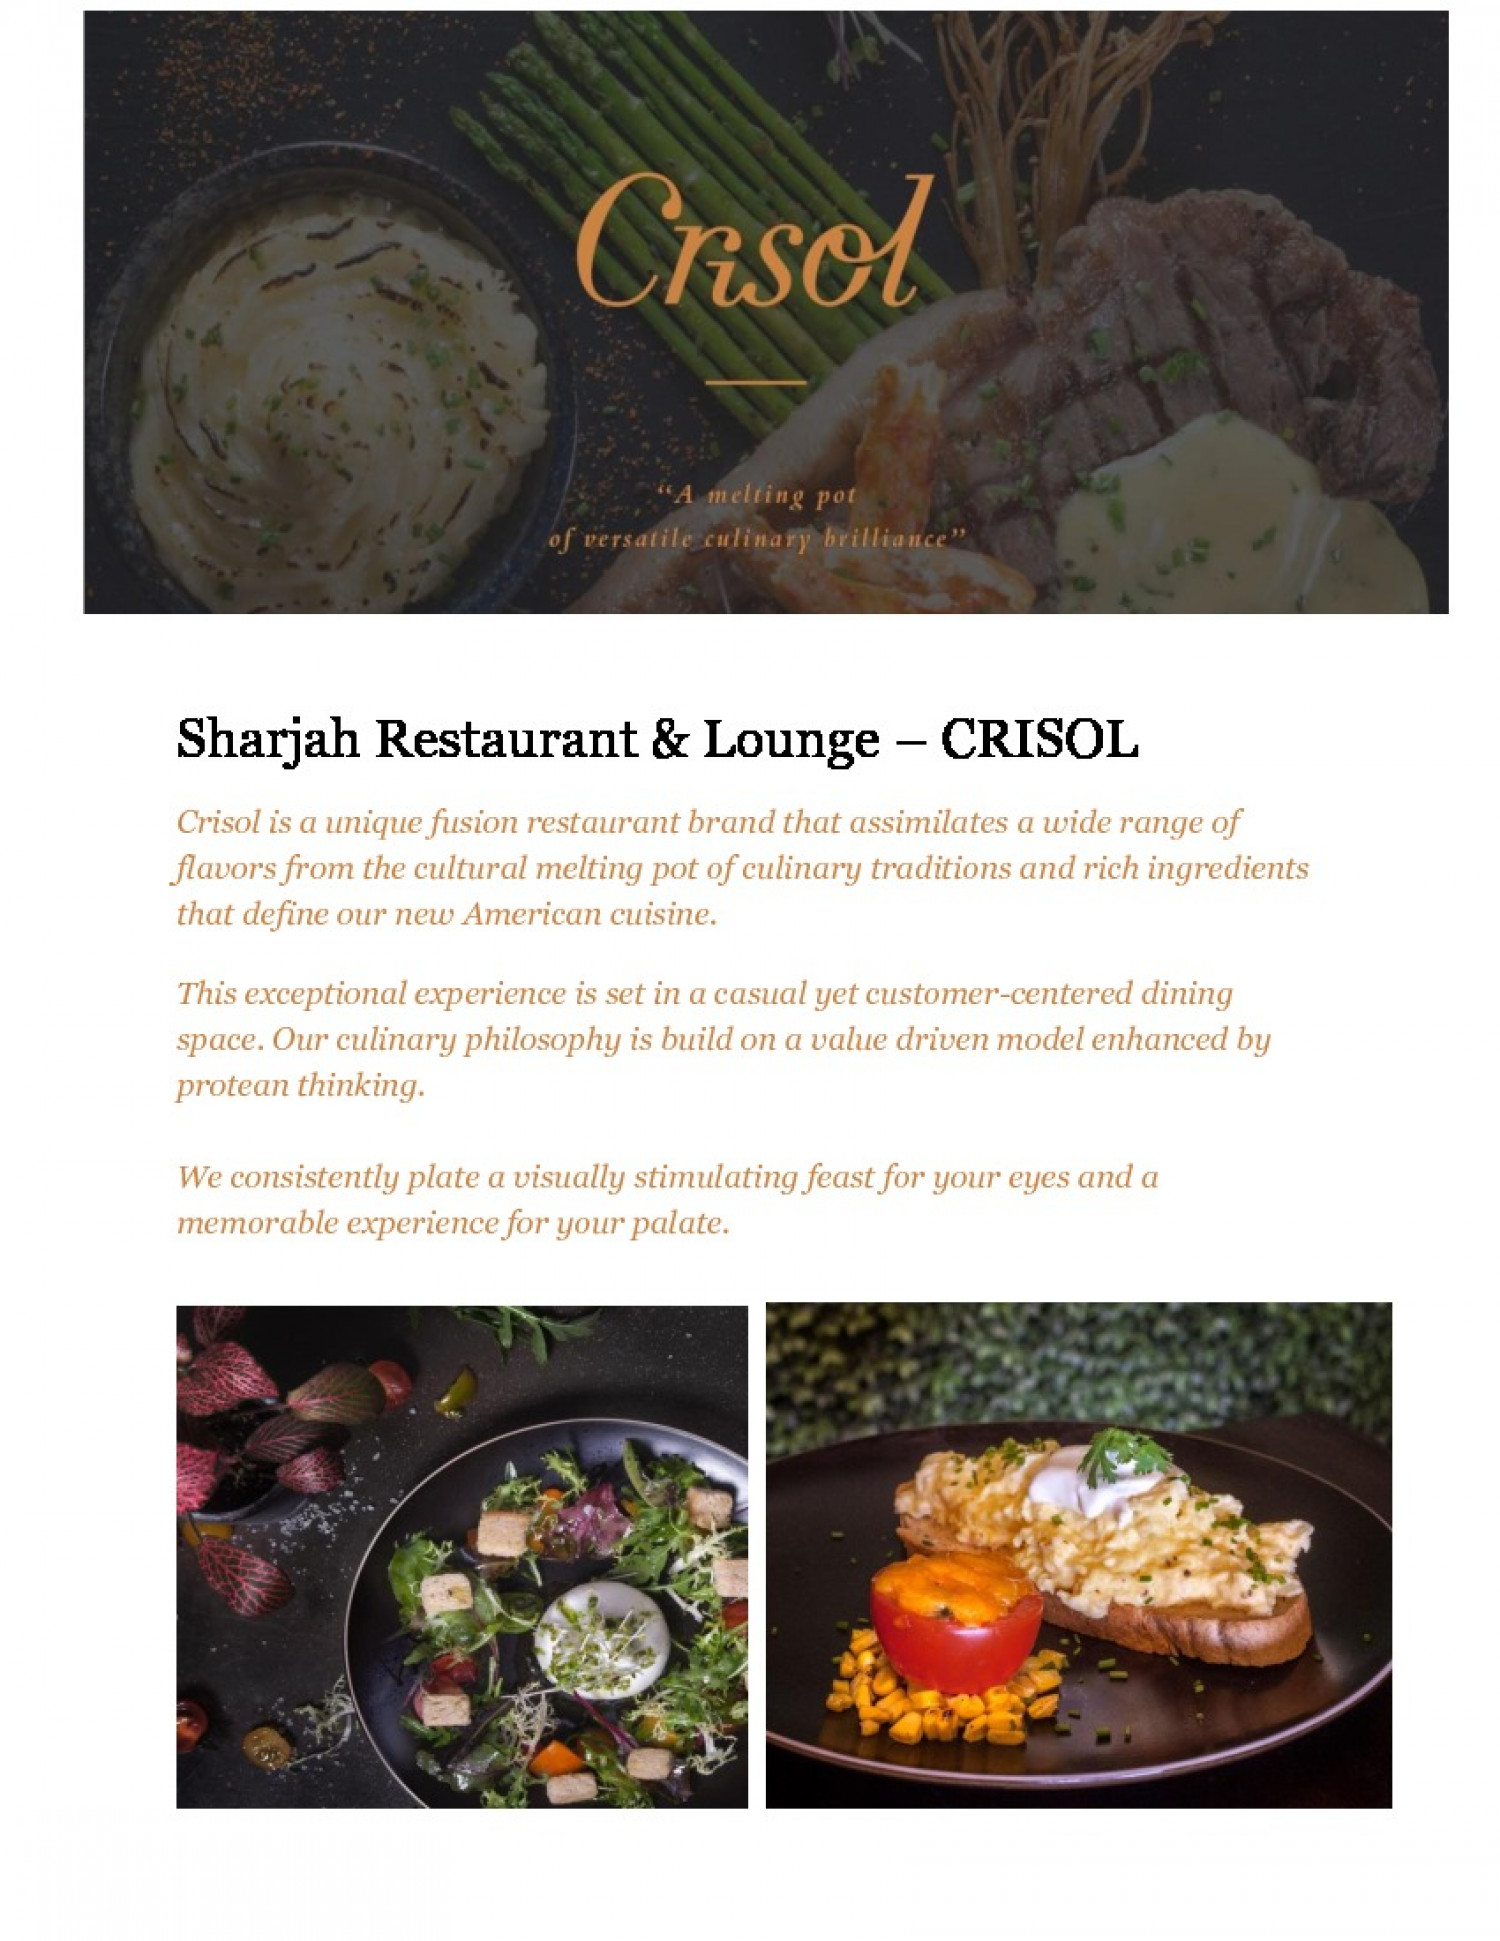 Are you looking best restaurant in sharjah? Infographic